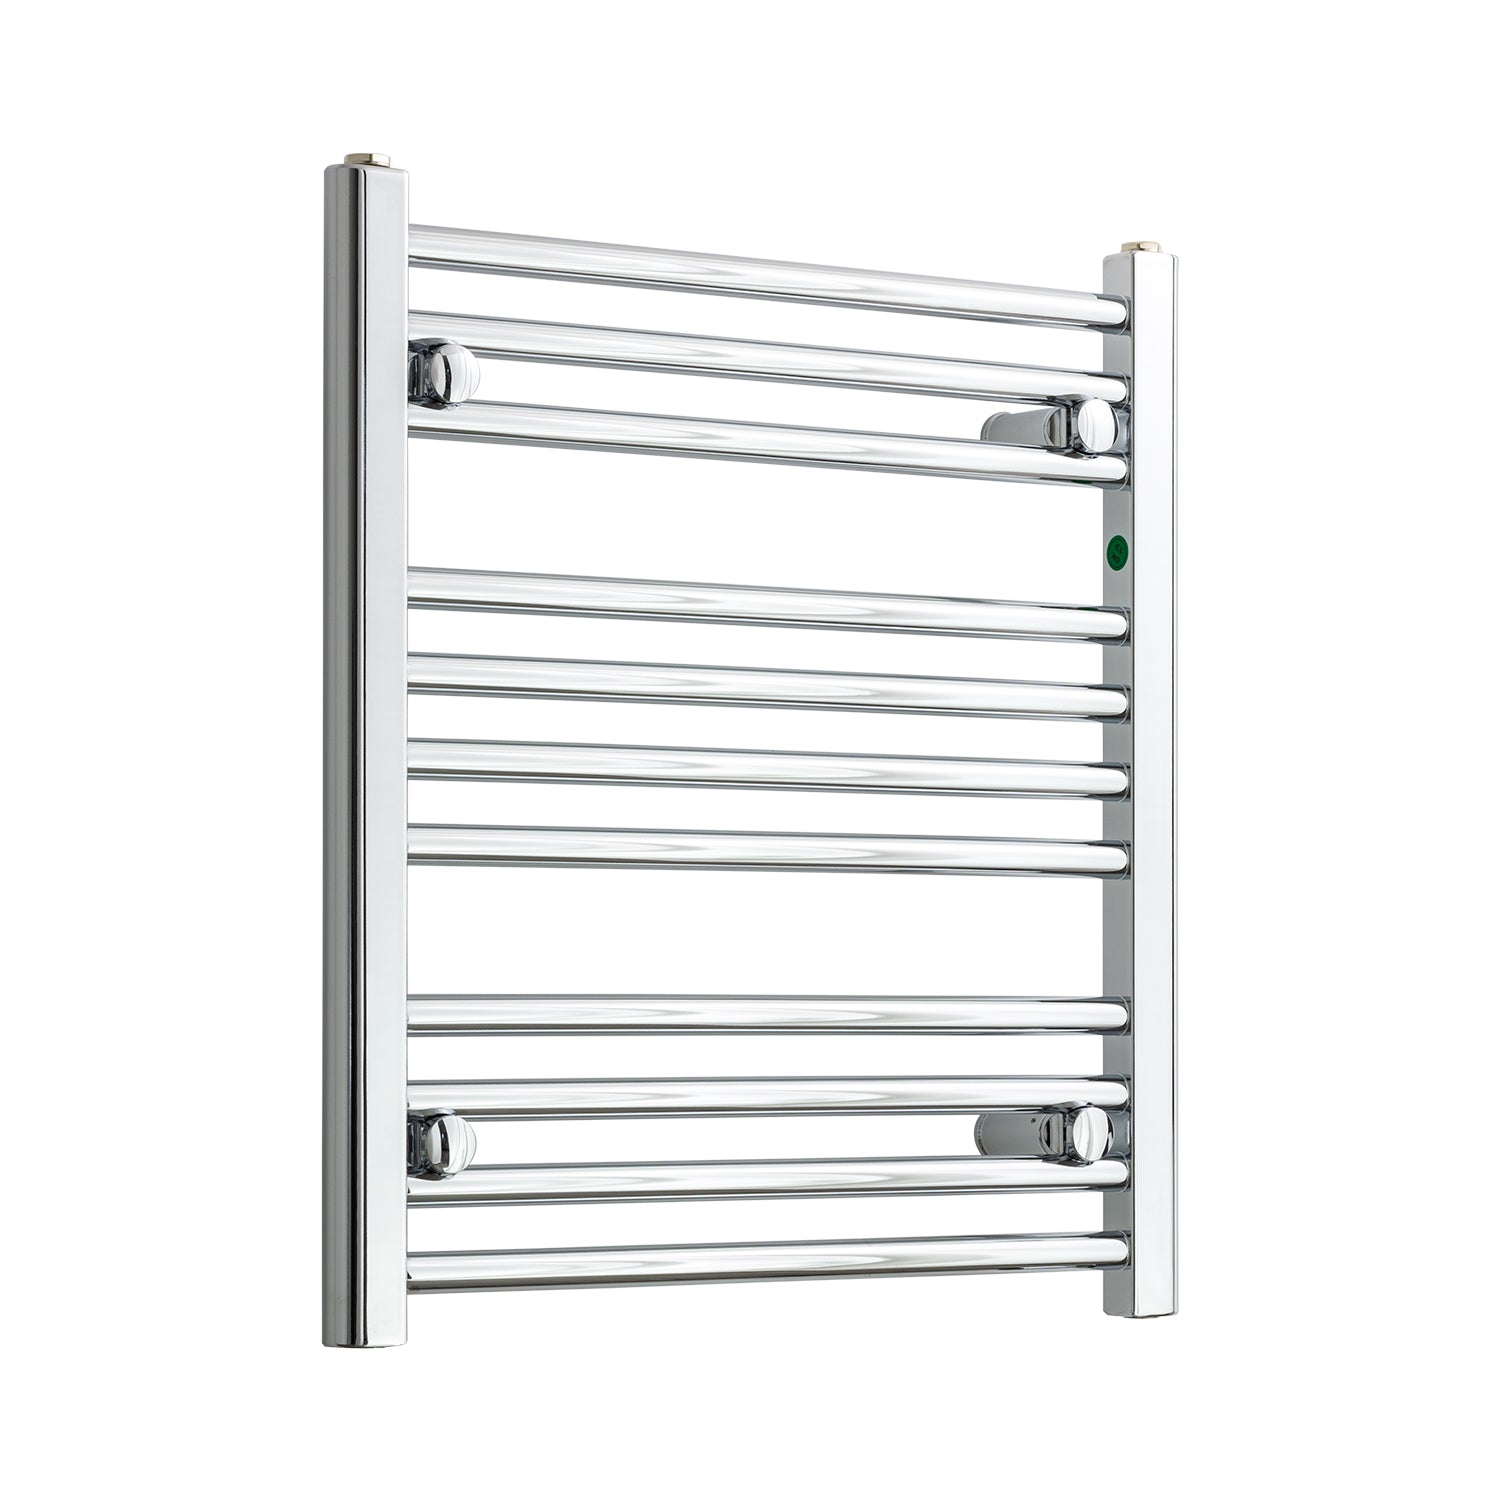 550mm Wide 600mm High Chrome Towel Rail Radiator